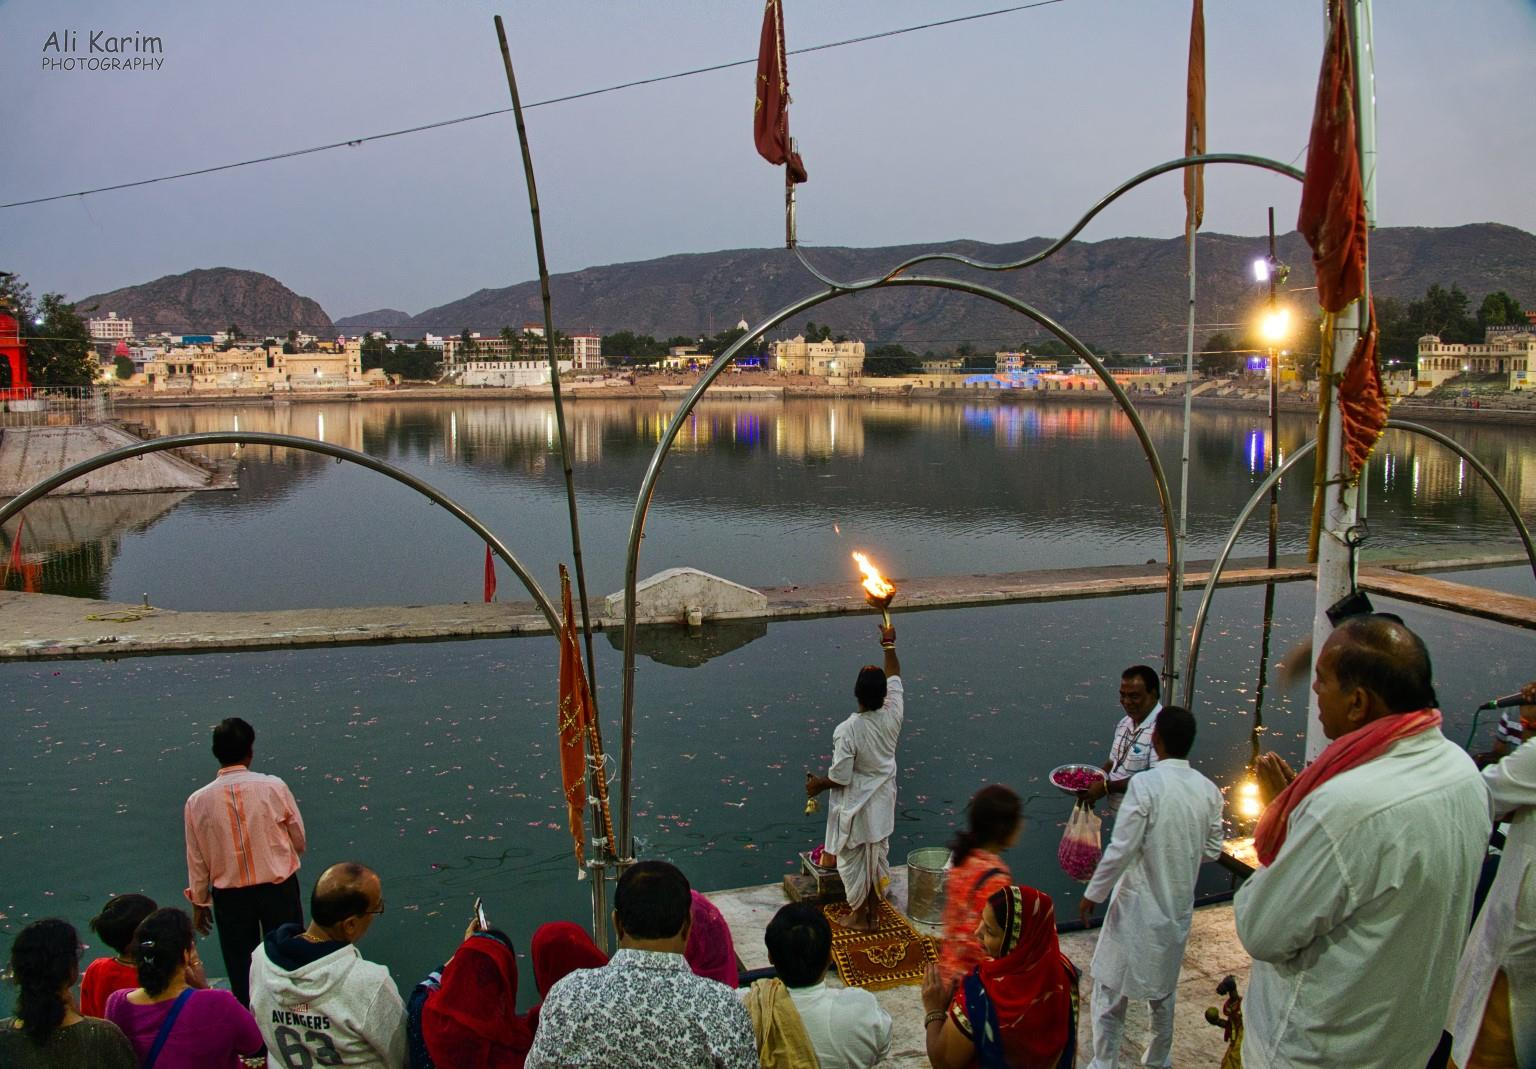 Pushkar, Rajasthan Aarti ceremony at dusk, at a local temple on Lake Pushkar, not as impressive and large-scale like aarti ceremonies in Varanasi